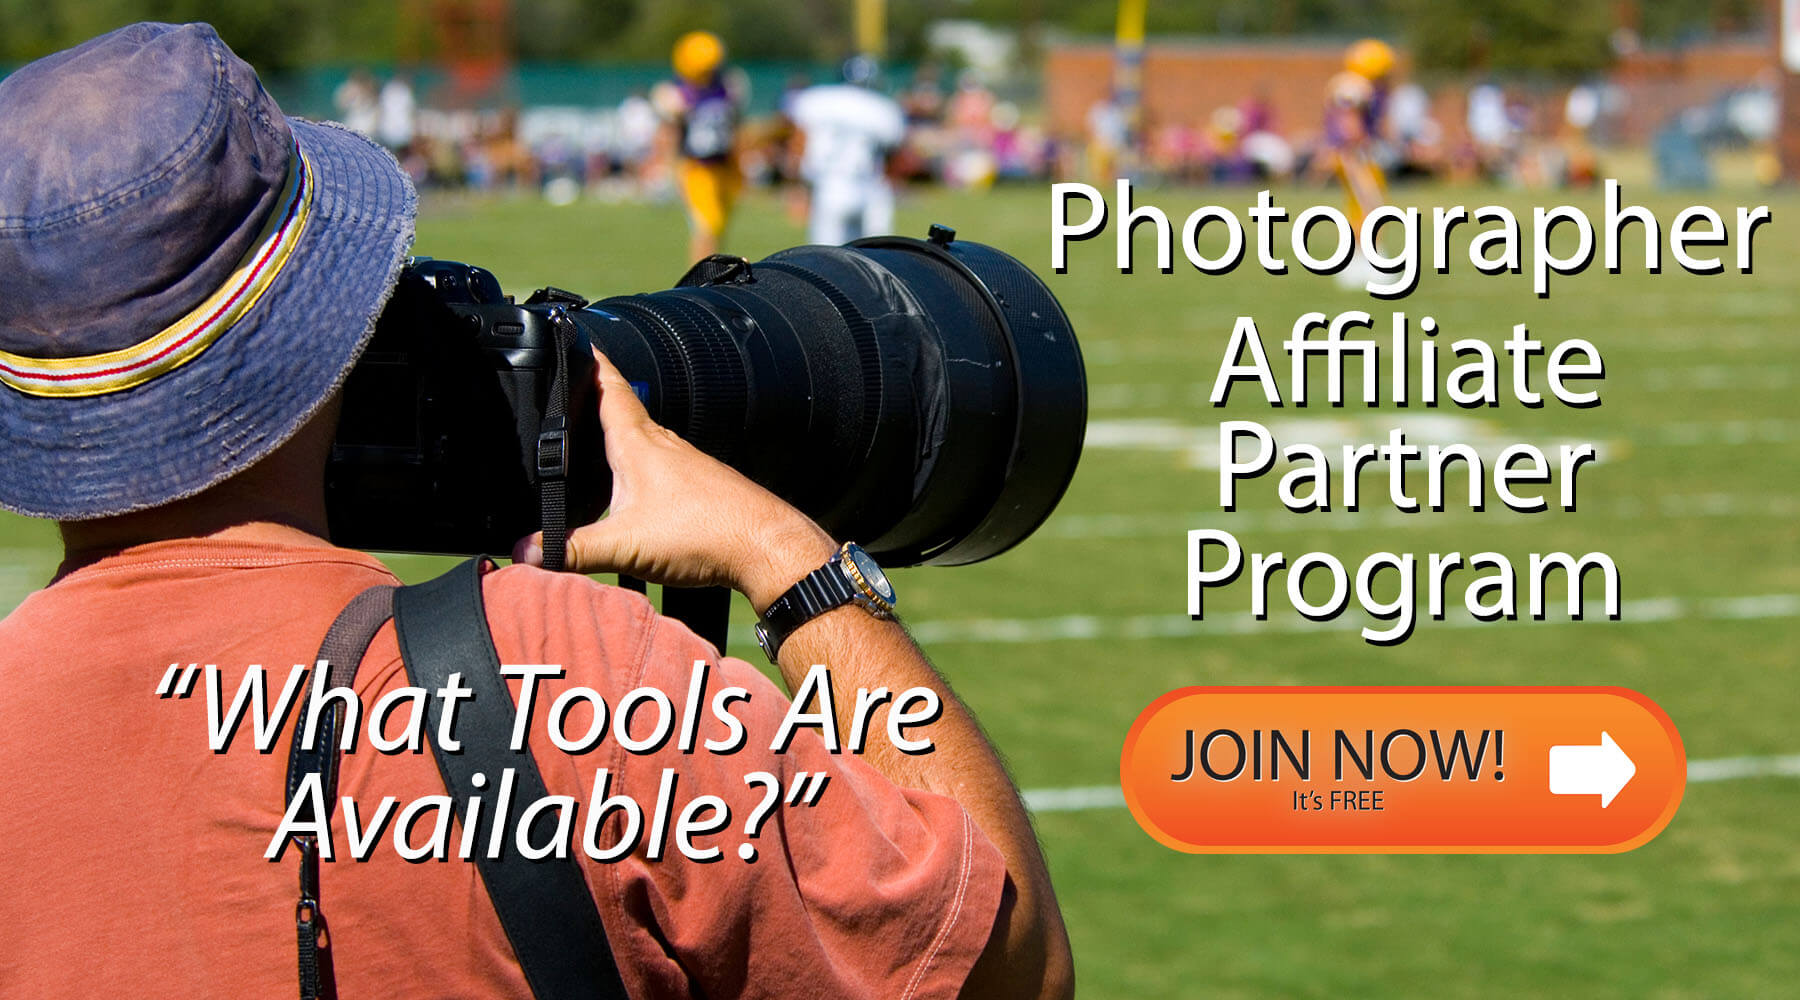 Wallhogs Photographer Affiliate Partner Program | What Tools Are Available?